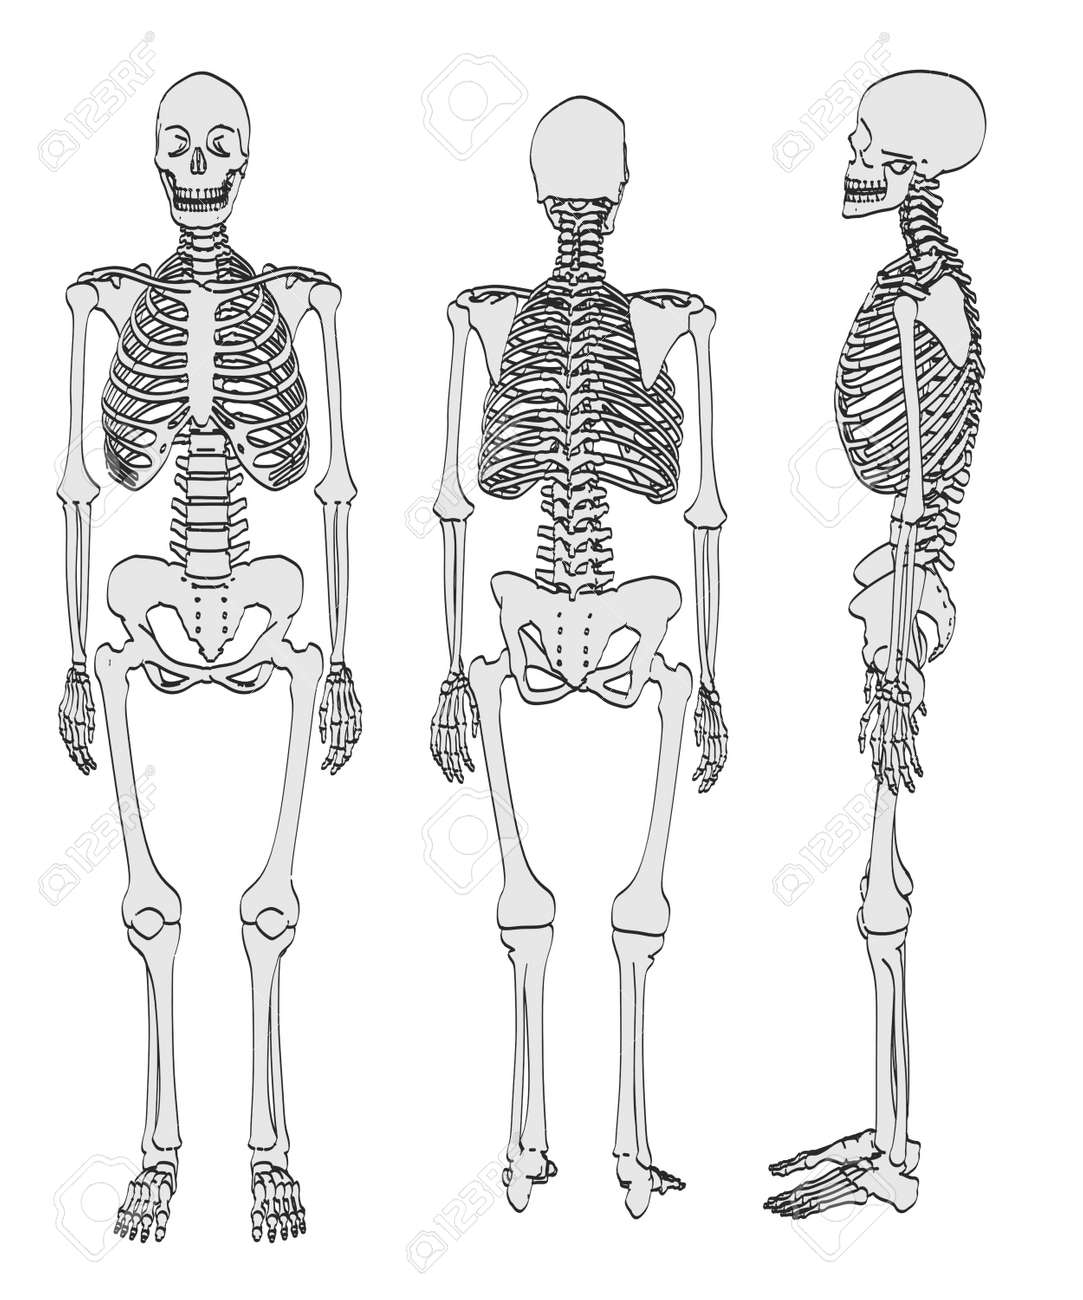 2d Cartoon Illustration Of Female Skeleton Stock Photo, Picture And ...